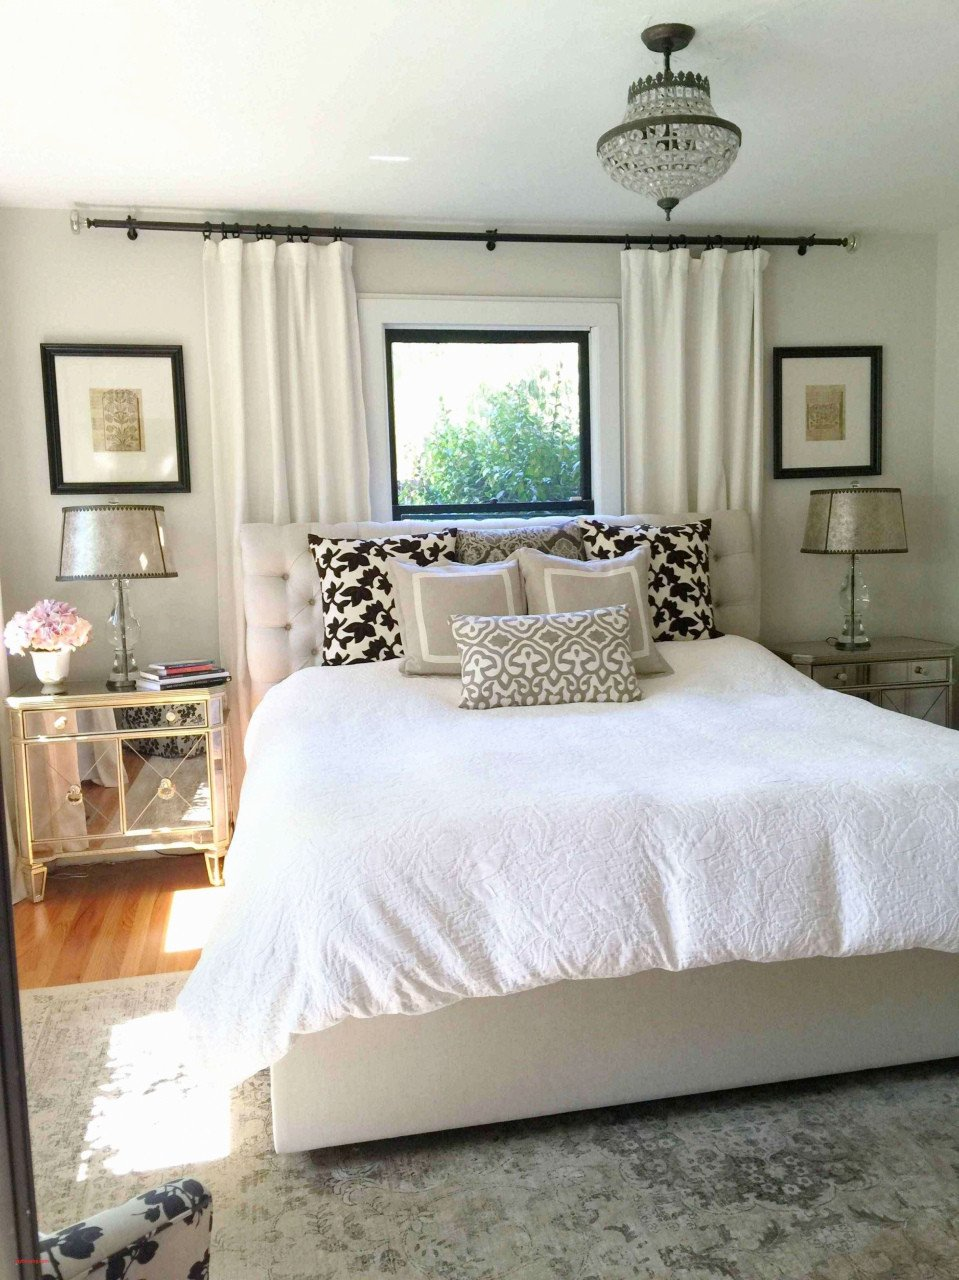 Where to Buy Bedroom Furniture Luxury Shabby Chic Sheets — Procura Home Blog